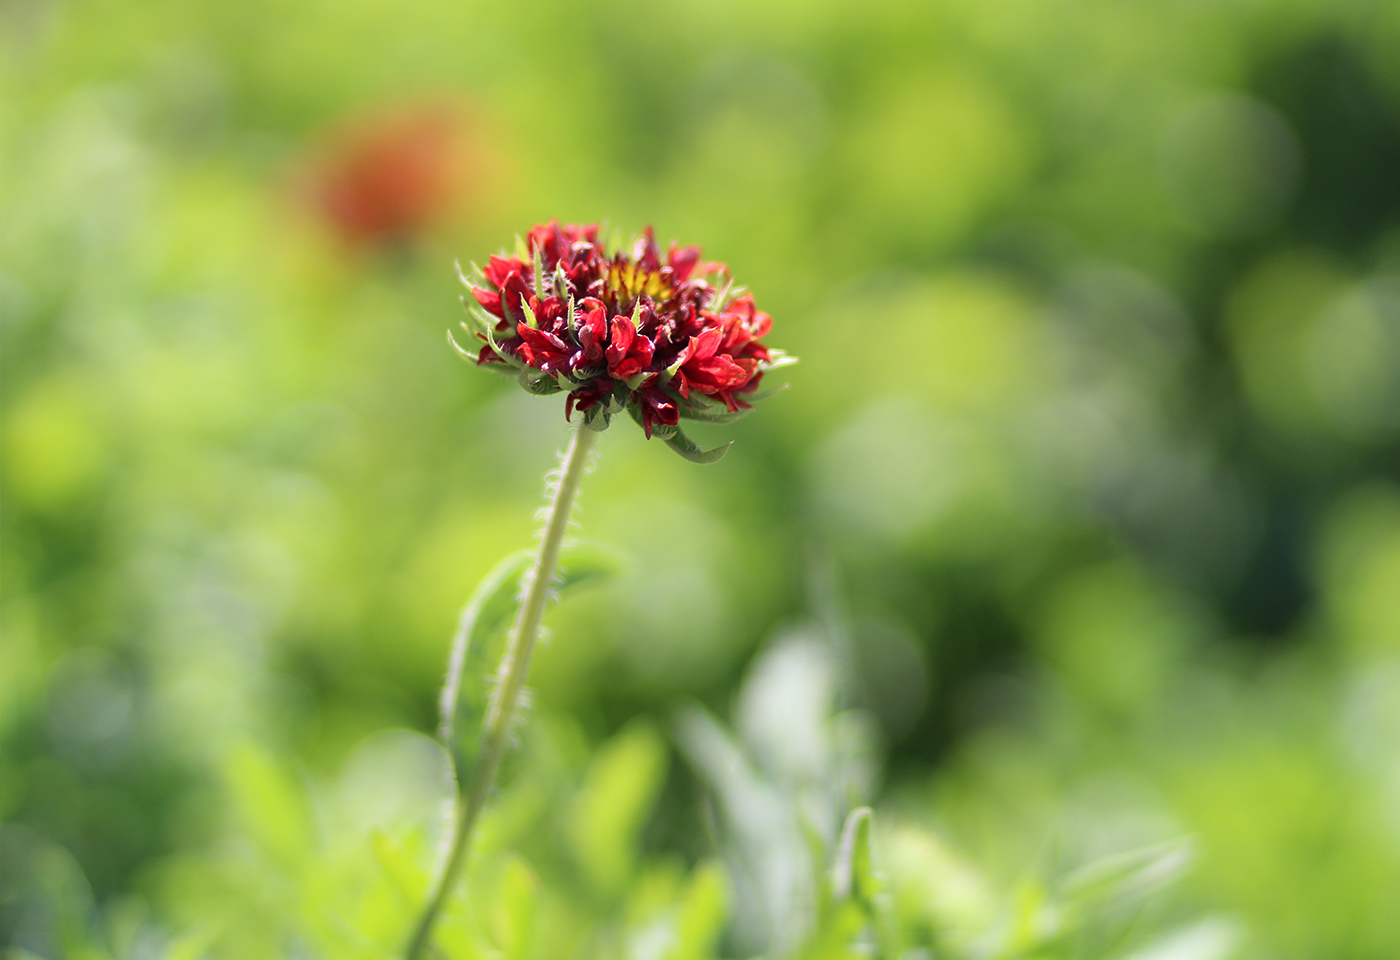 Red flower in the grass